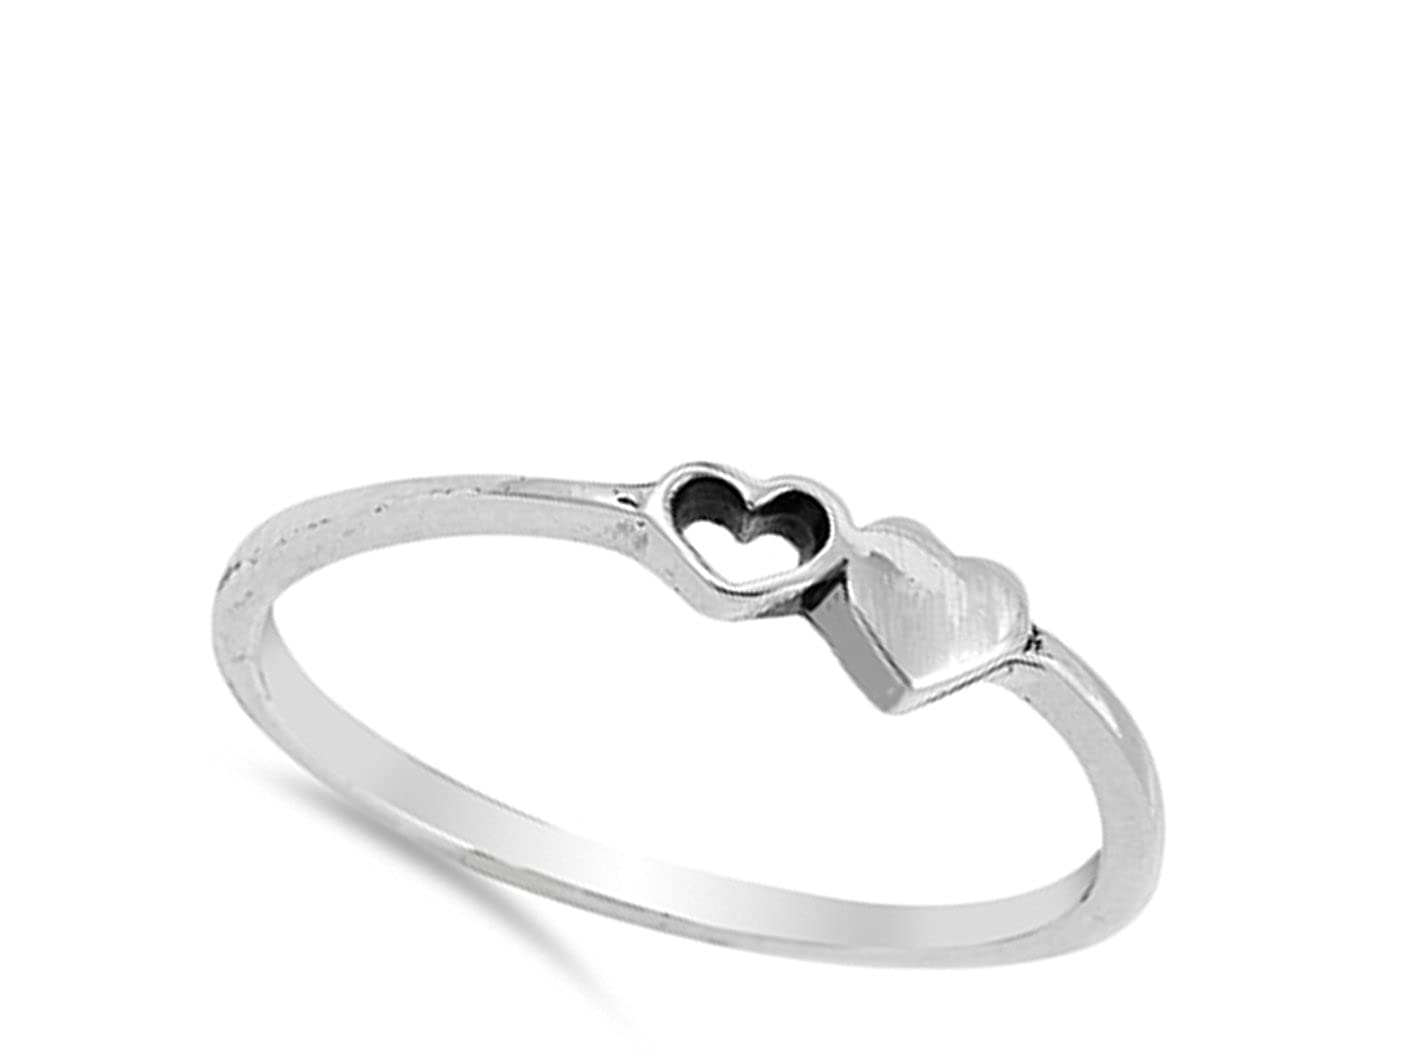 Cutout Heart Purity Promise Dainty Ring New .925 Sterling Silver Band Sizes 4-10